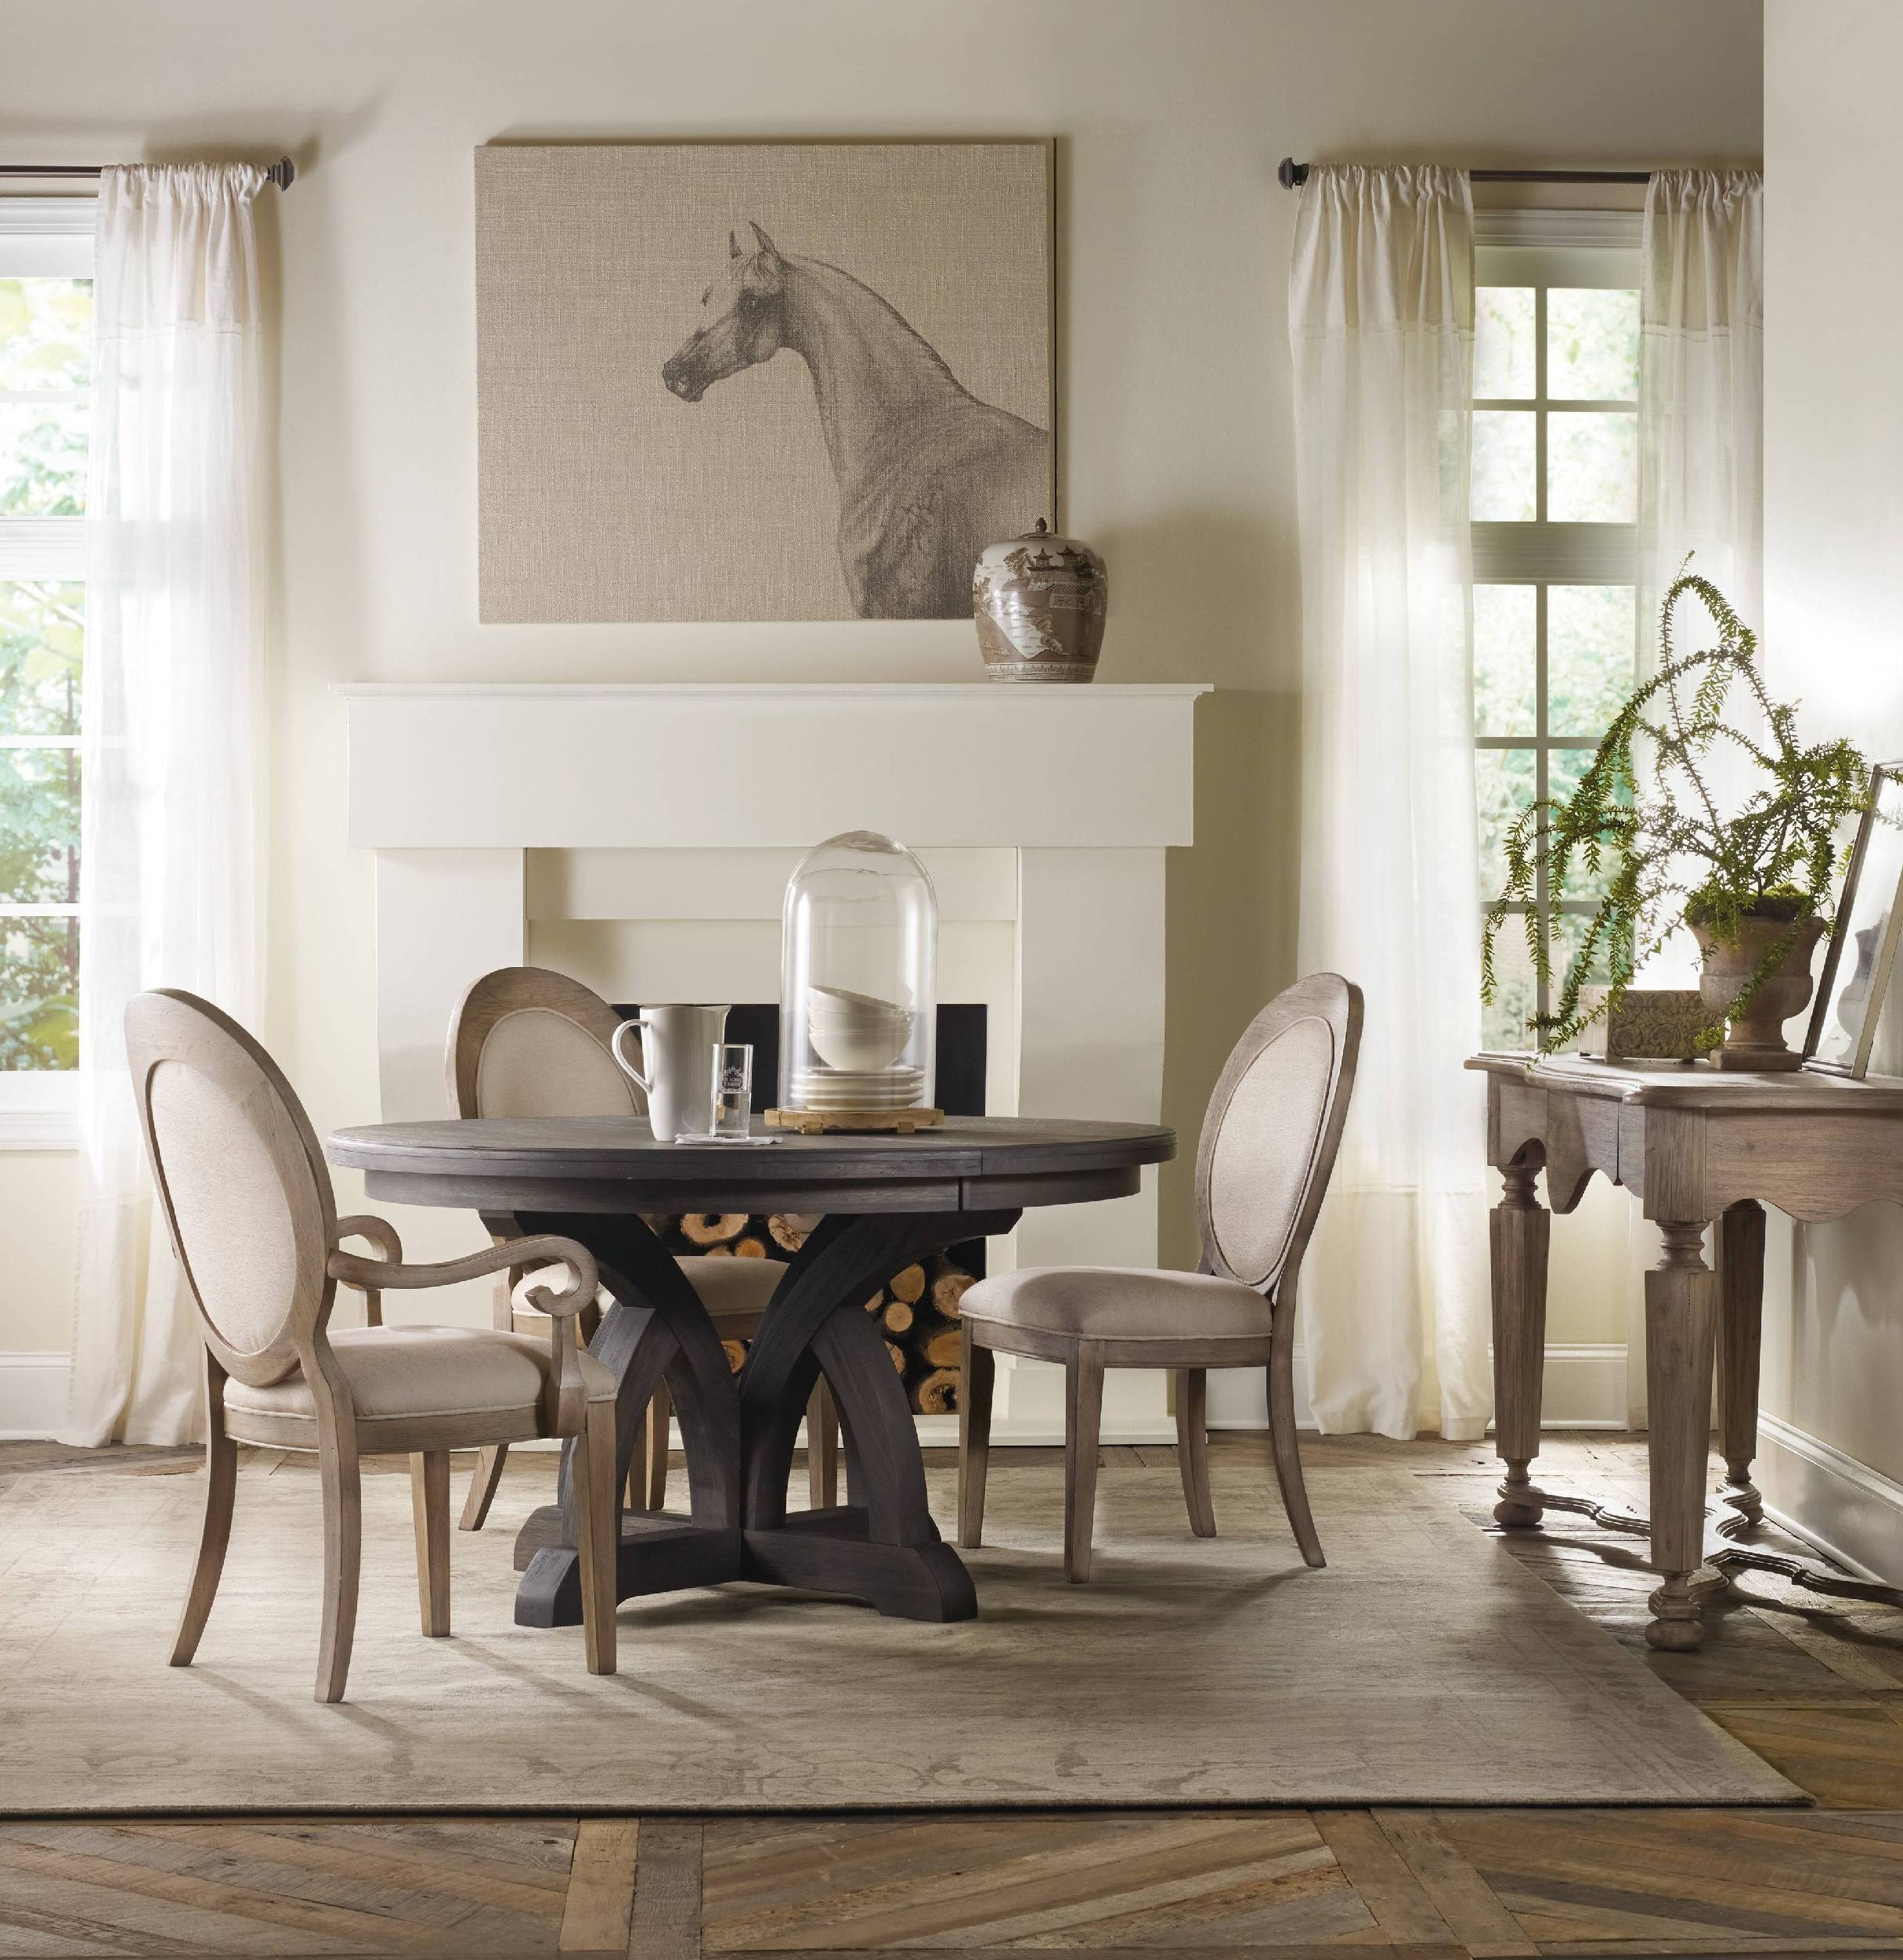 Hooker Furniture Dining Room Corsica Dark Round Dining Table W 1 18in Leaf 5280 75203